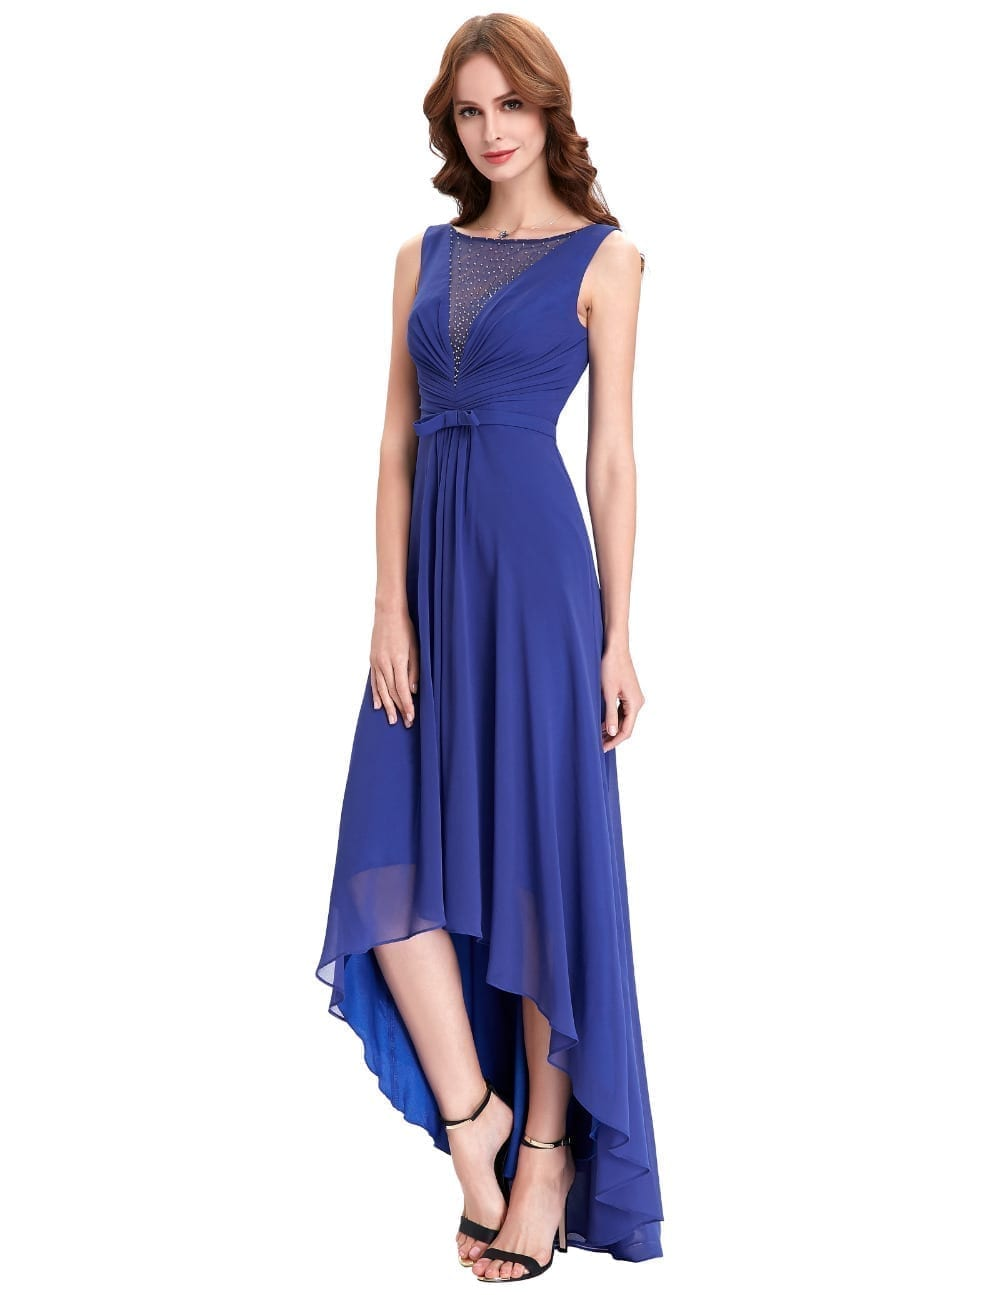 High low royal blue chiffon short front long back bridesmaid dress high low royal blue chiffon short front long back bridesmaid dress ombrellifo Image collections